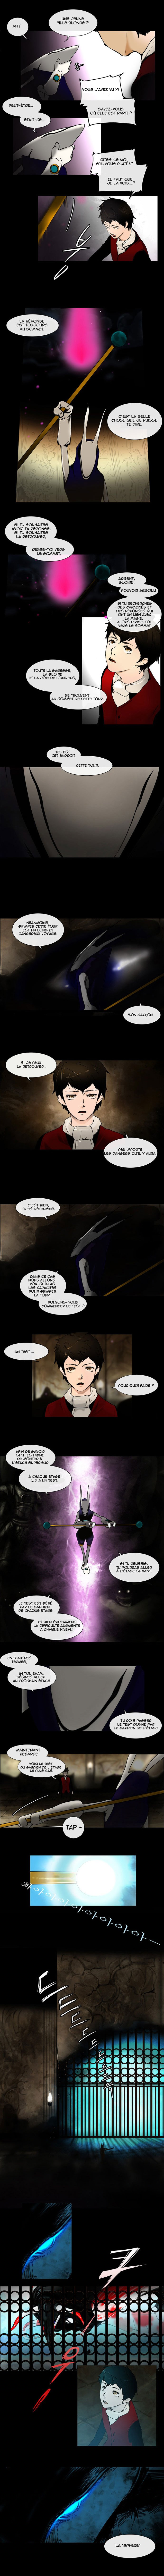 Tower of God - Chapitre 1 - L'étage d'Headon #5